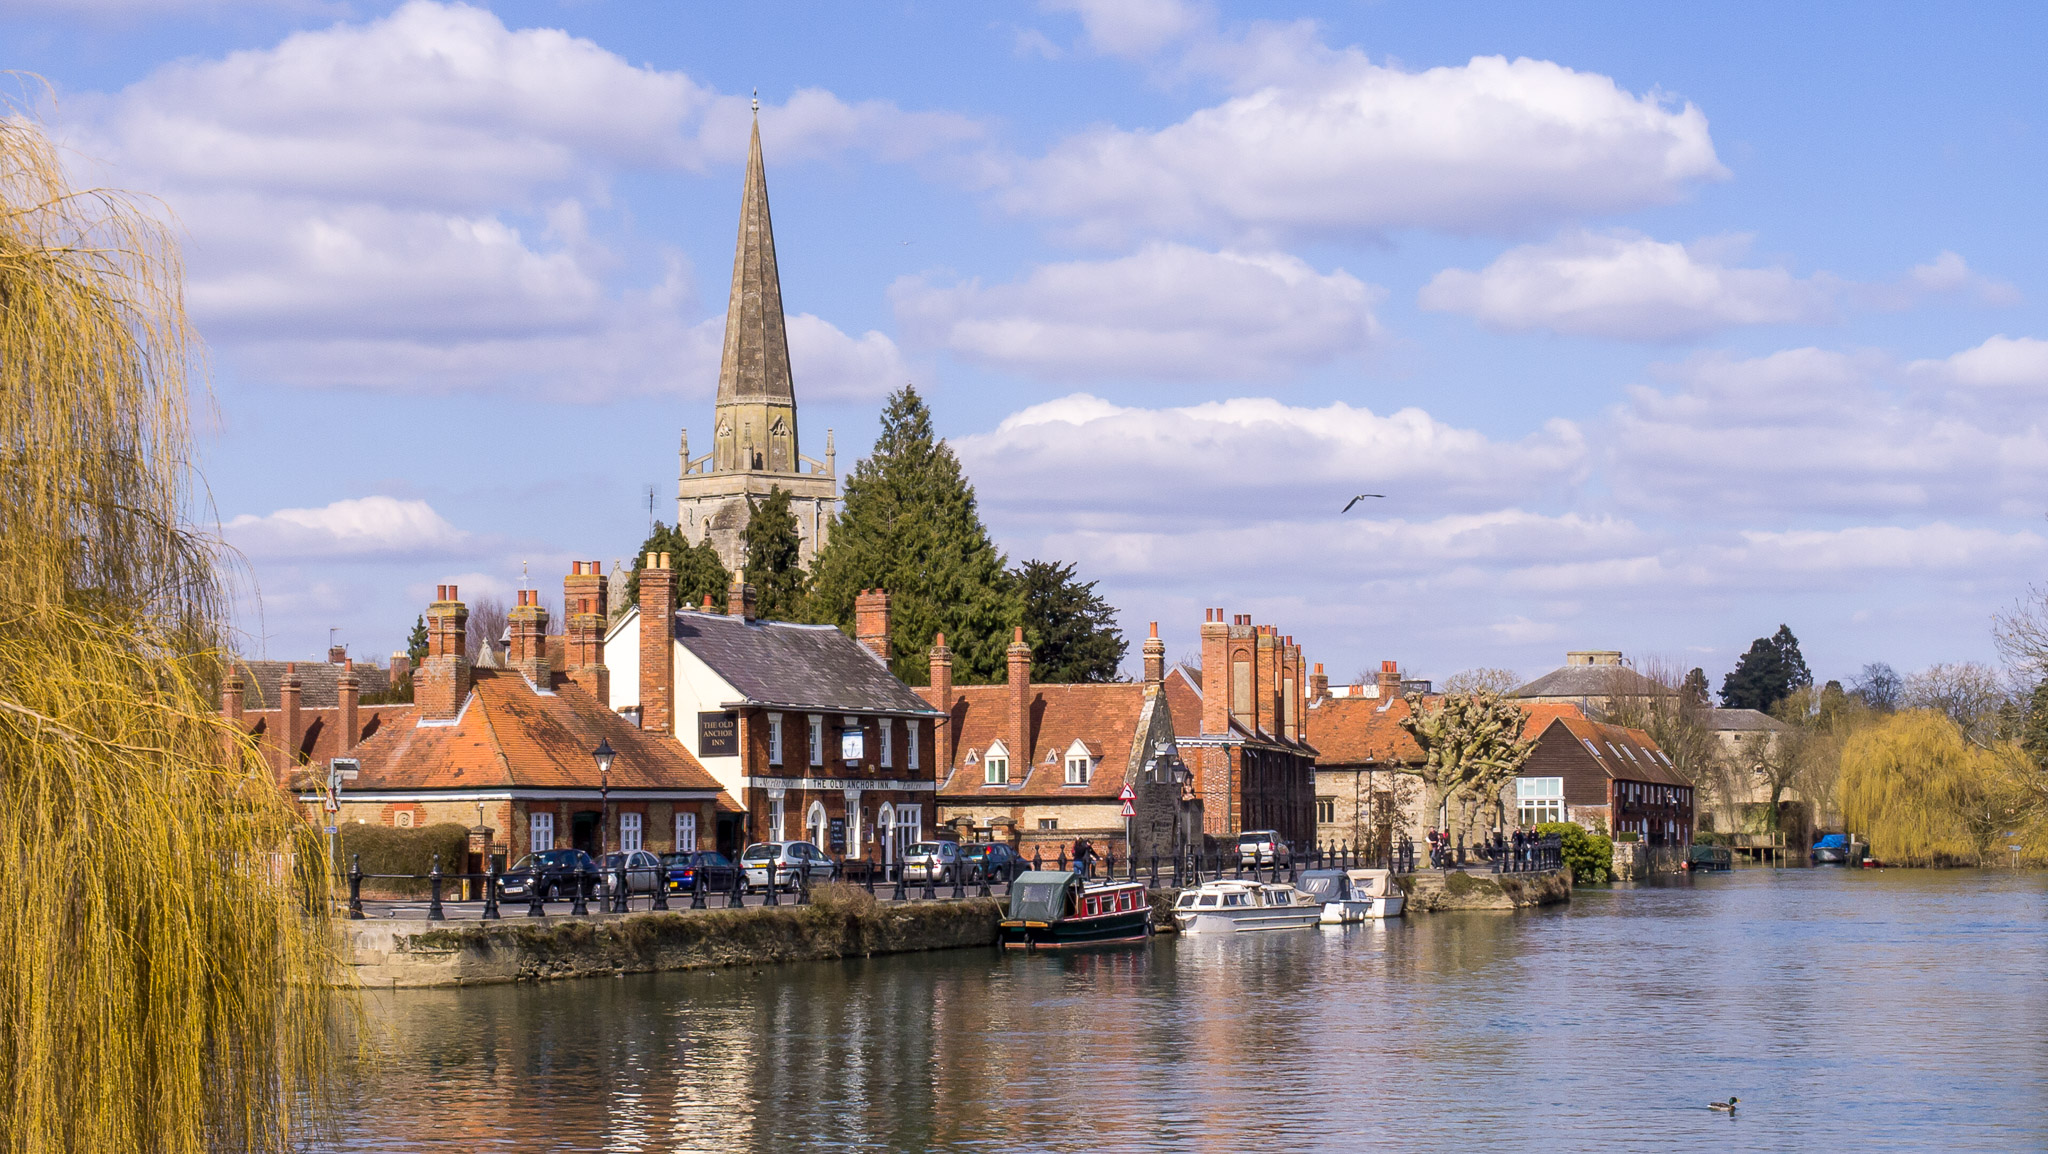 The town of Abingdon-on-Thames